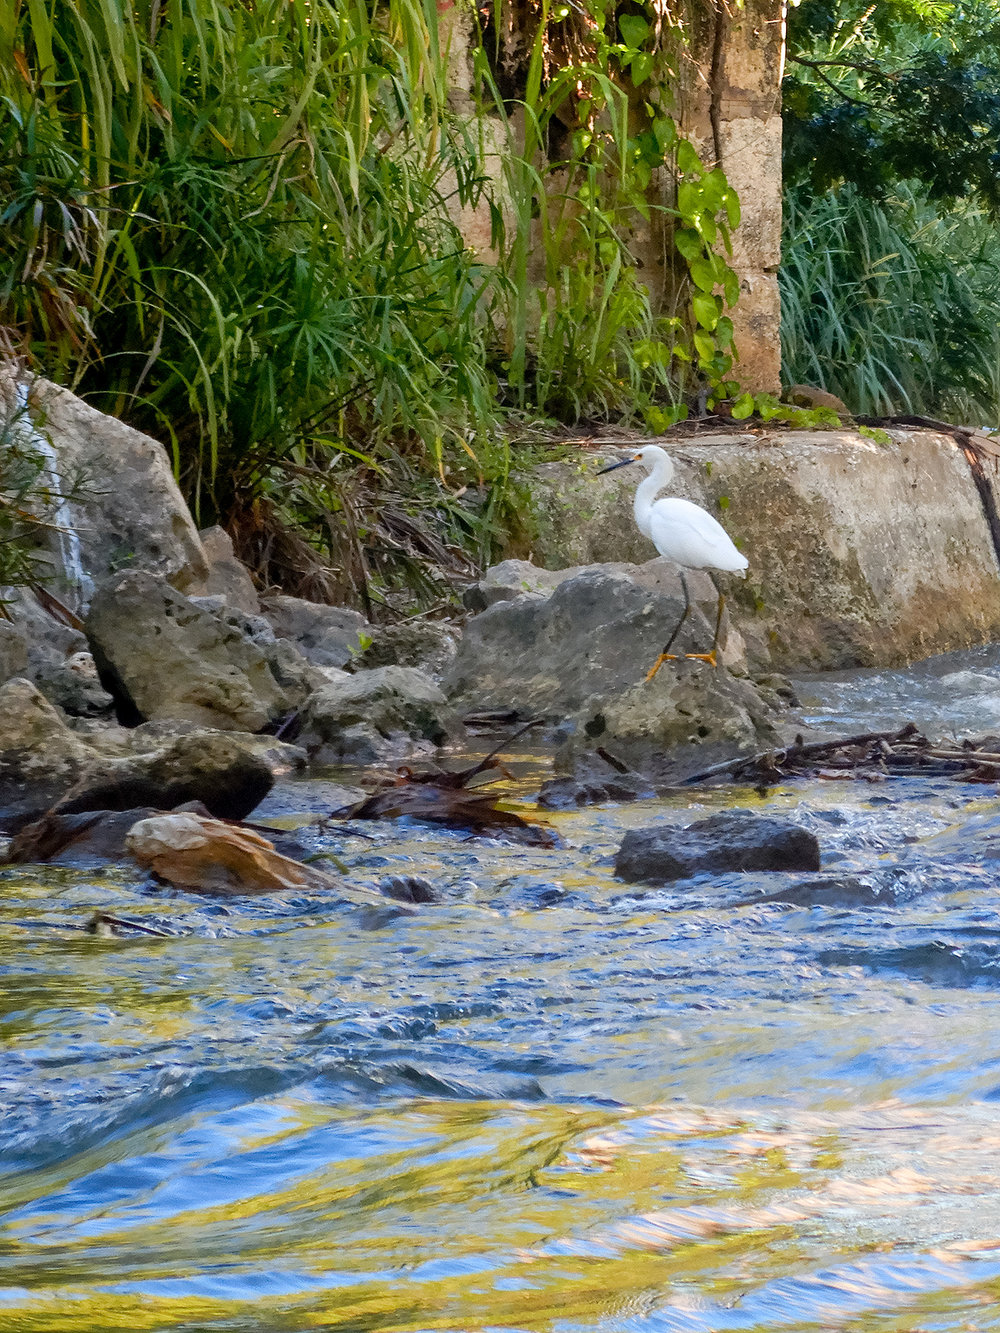 An egret along the river bank